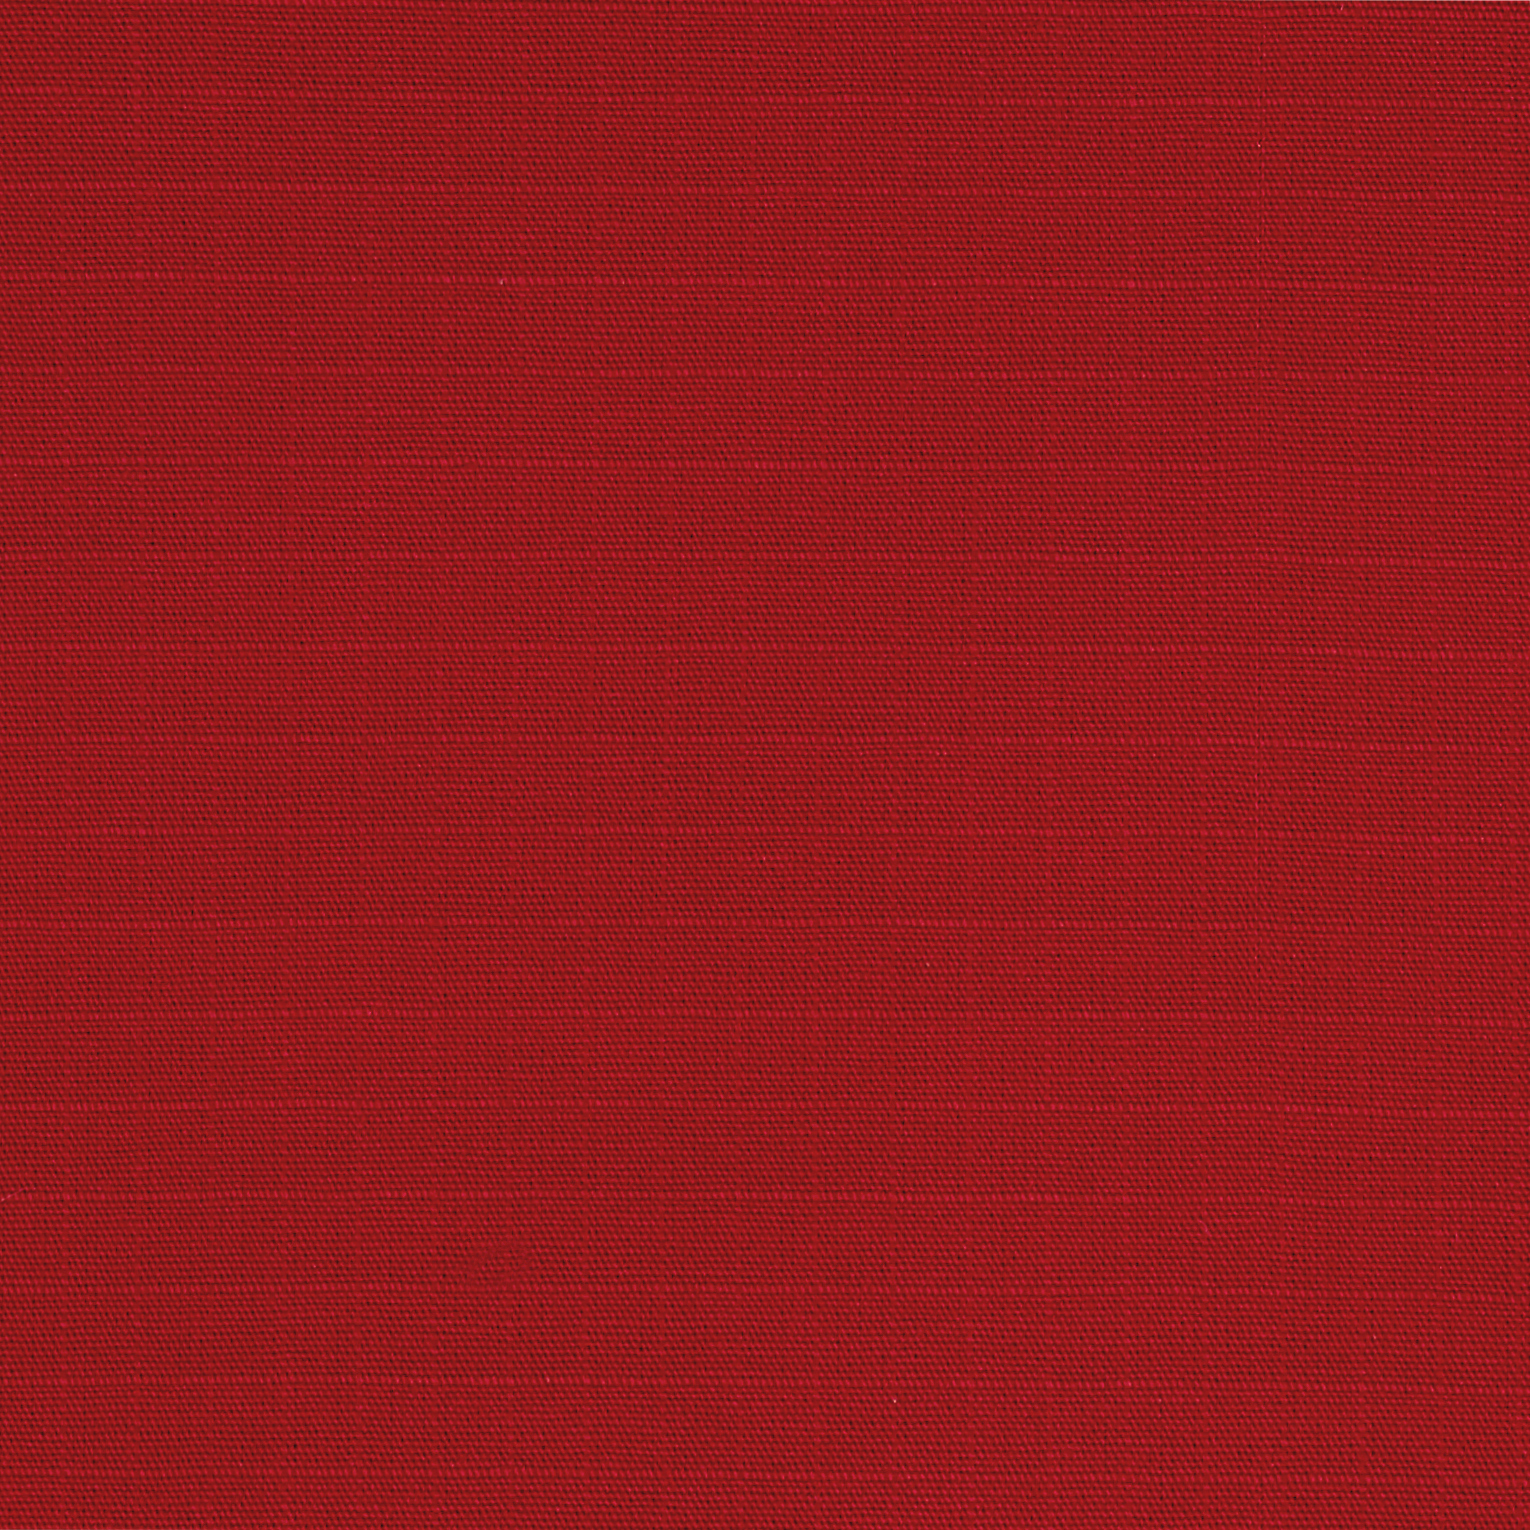 Cotton_Ripstop_Royal_Red_Fabric